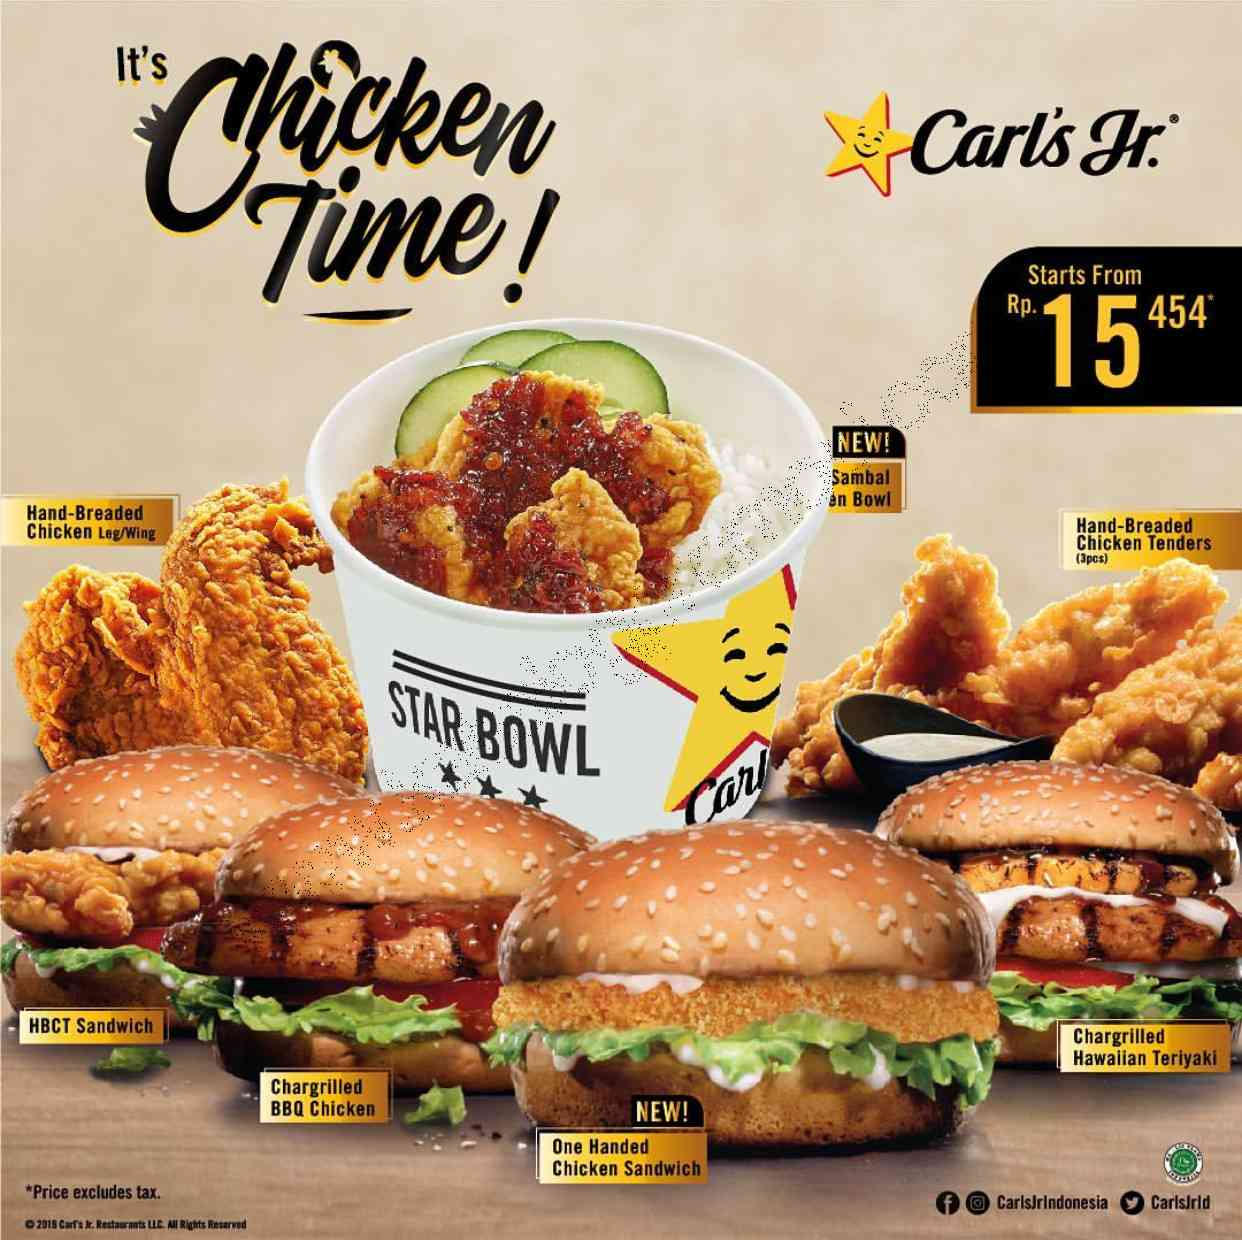 Diskon Carls Jr New t's Chicken Time! series